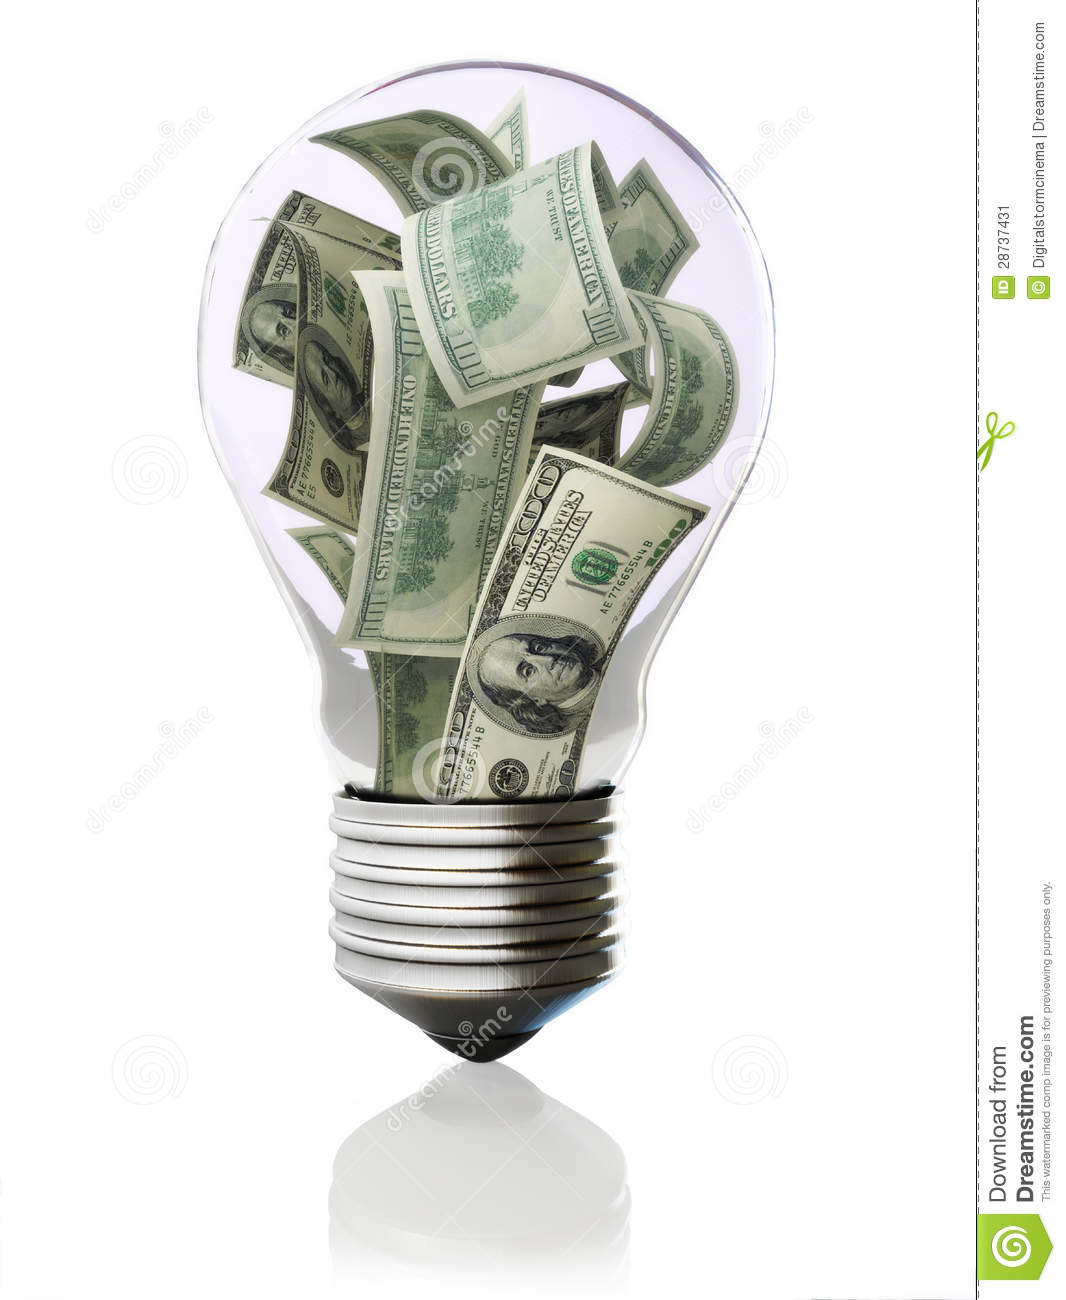 Money in light bulb concept stock illustration image 28737431 Cost of light bulb